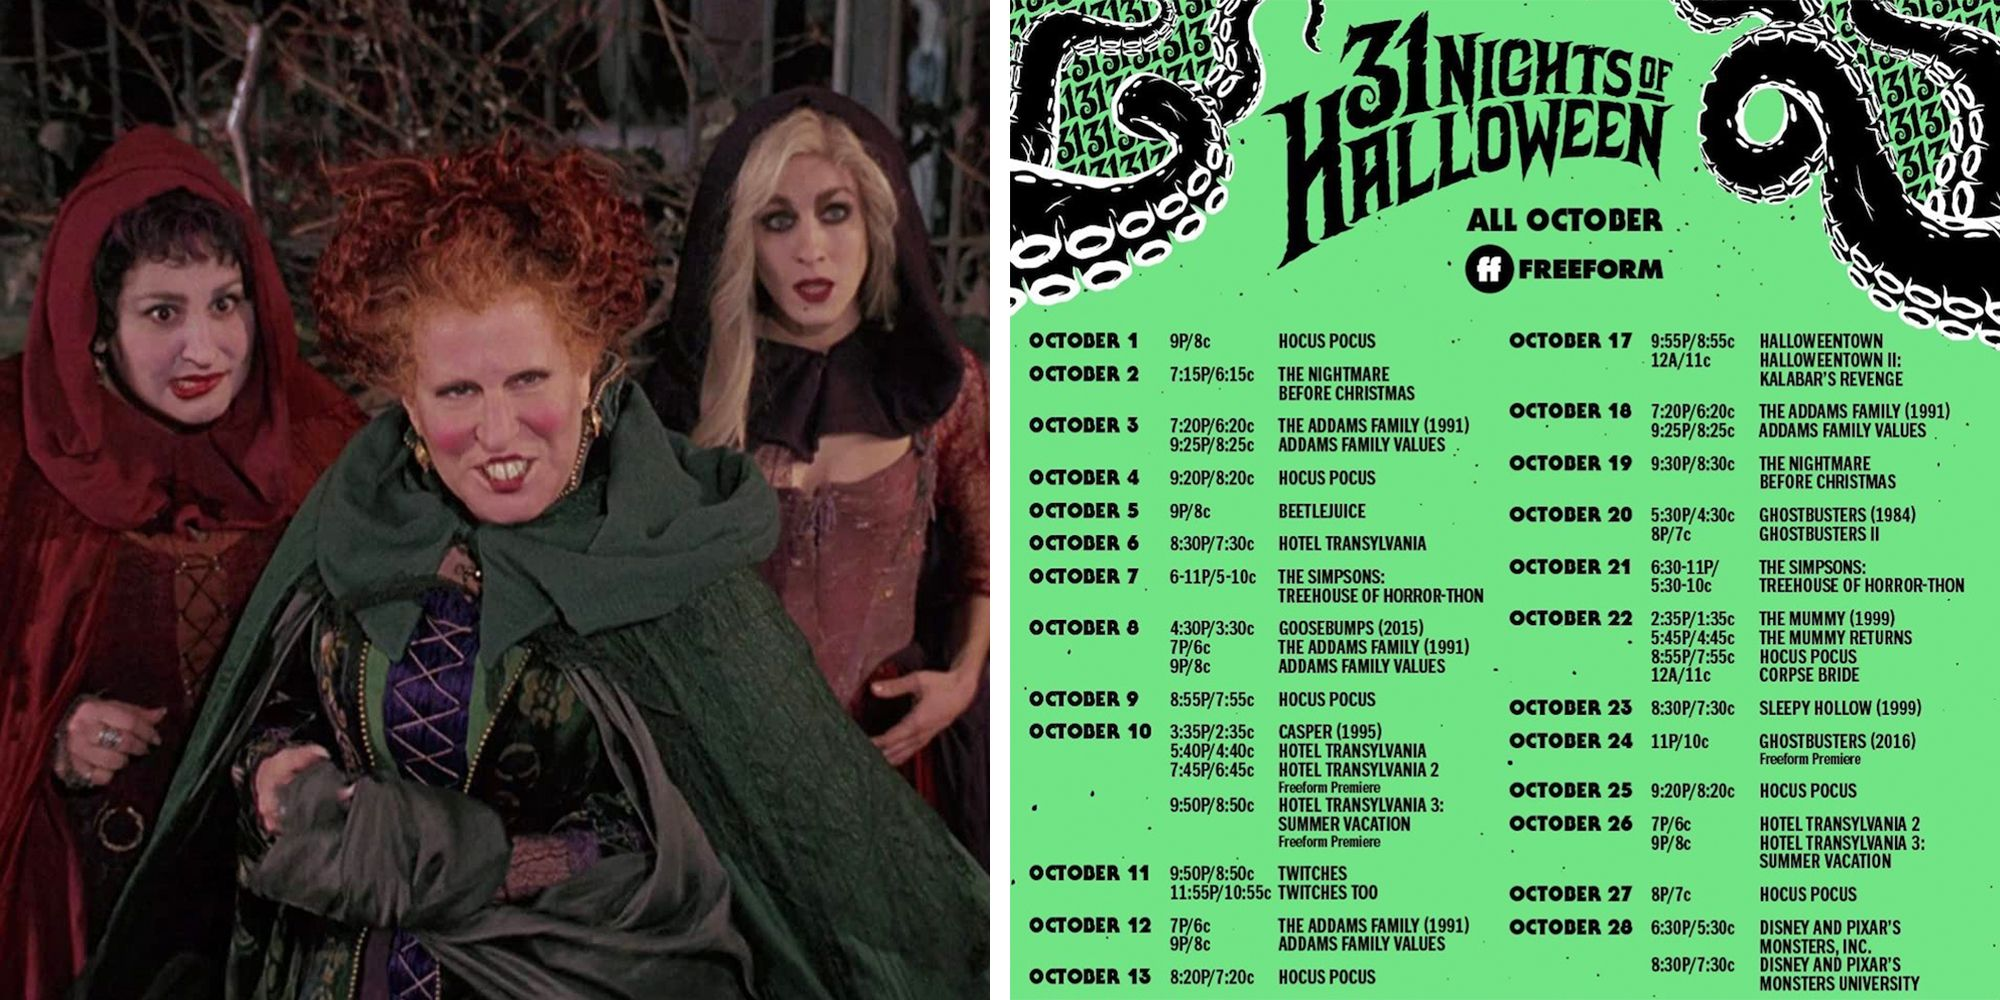 31 Days Of Halloween 2020 Freeform Just Released Its '31 Nights of Halloween' Schedule With